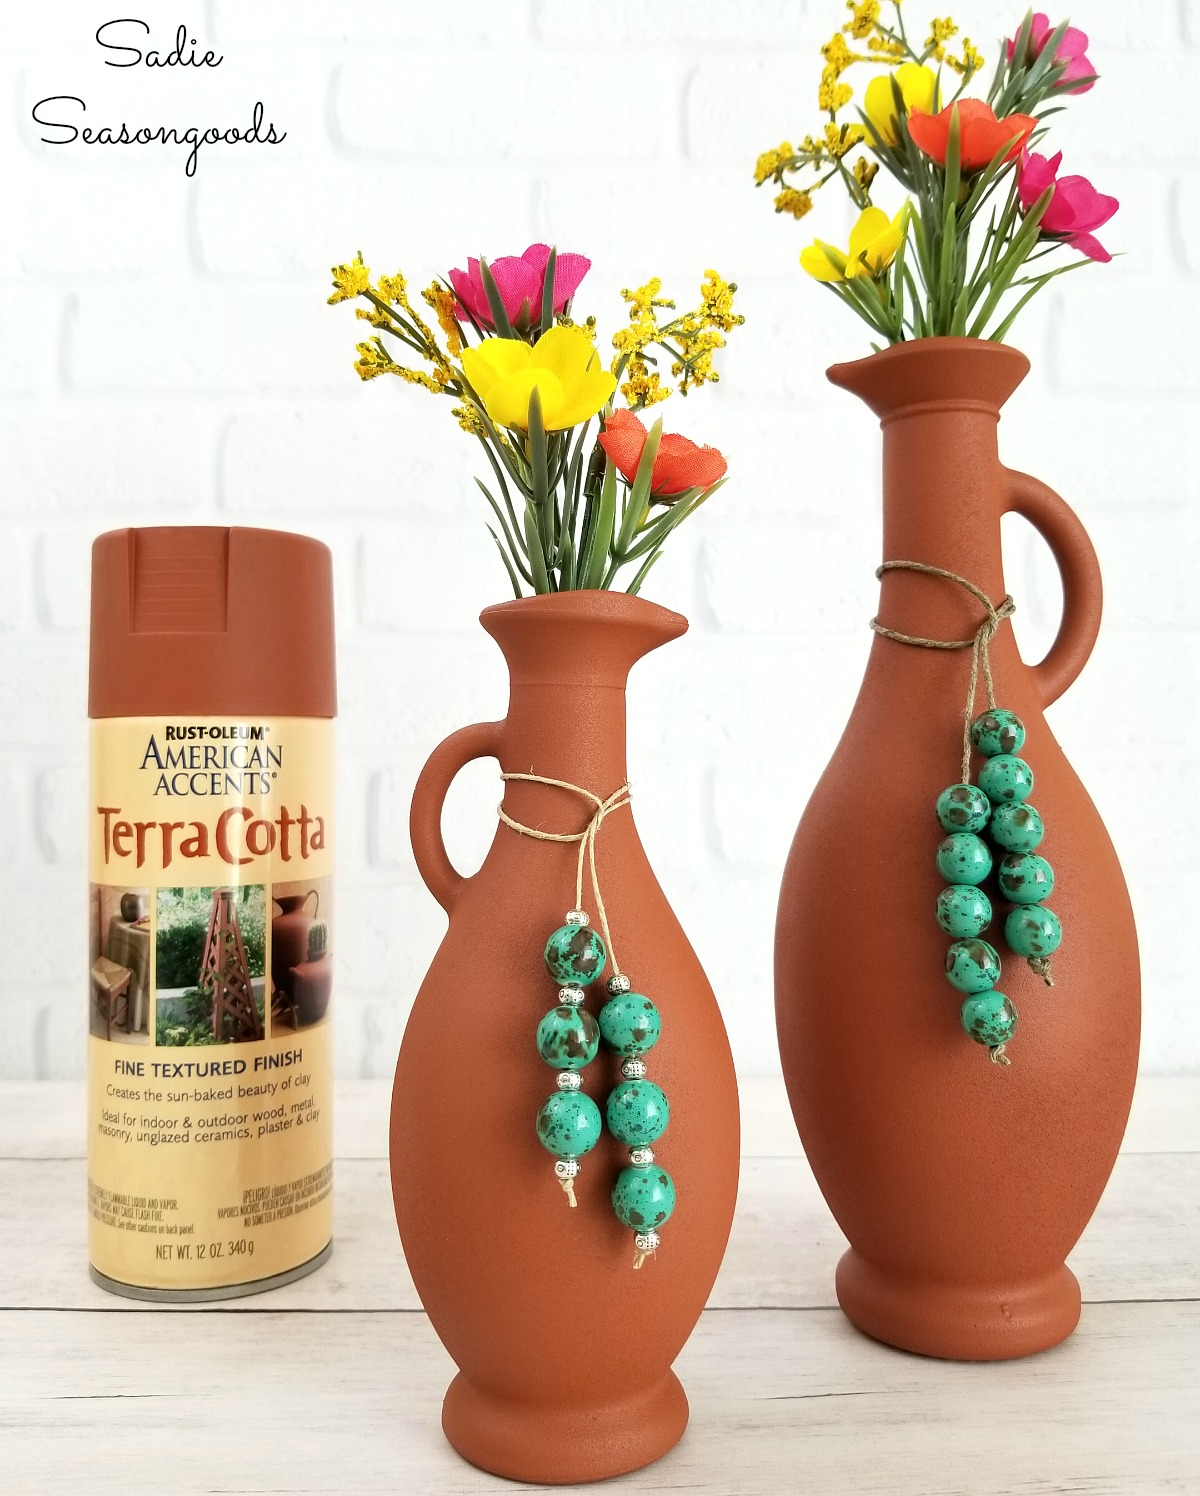 Spray paint for glass or terracotta vase for painting glass to upcycle into southwestern decor by Sadie Seasongoods